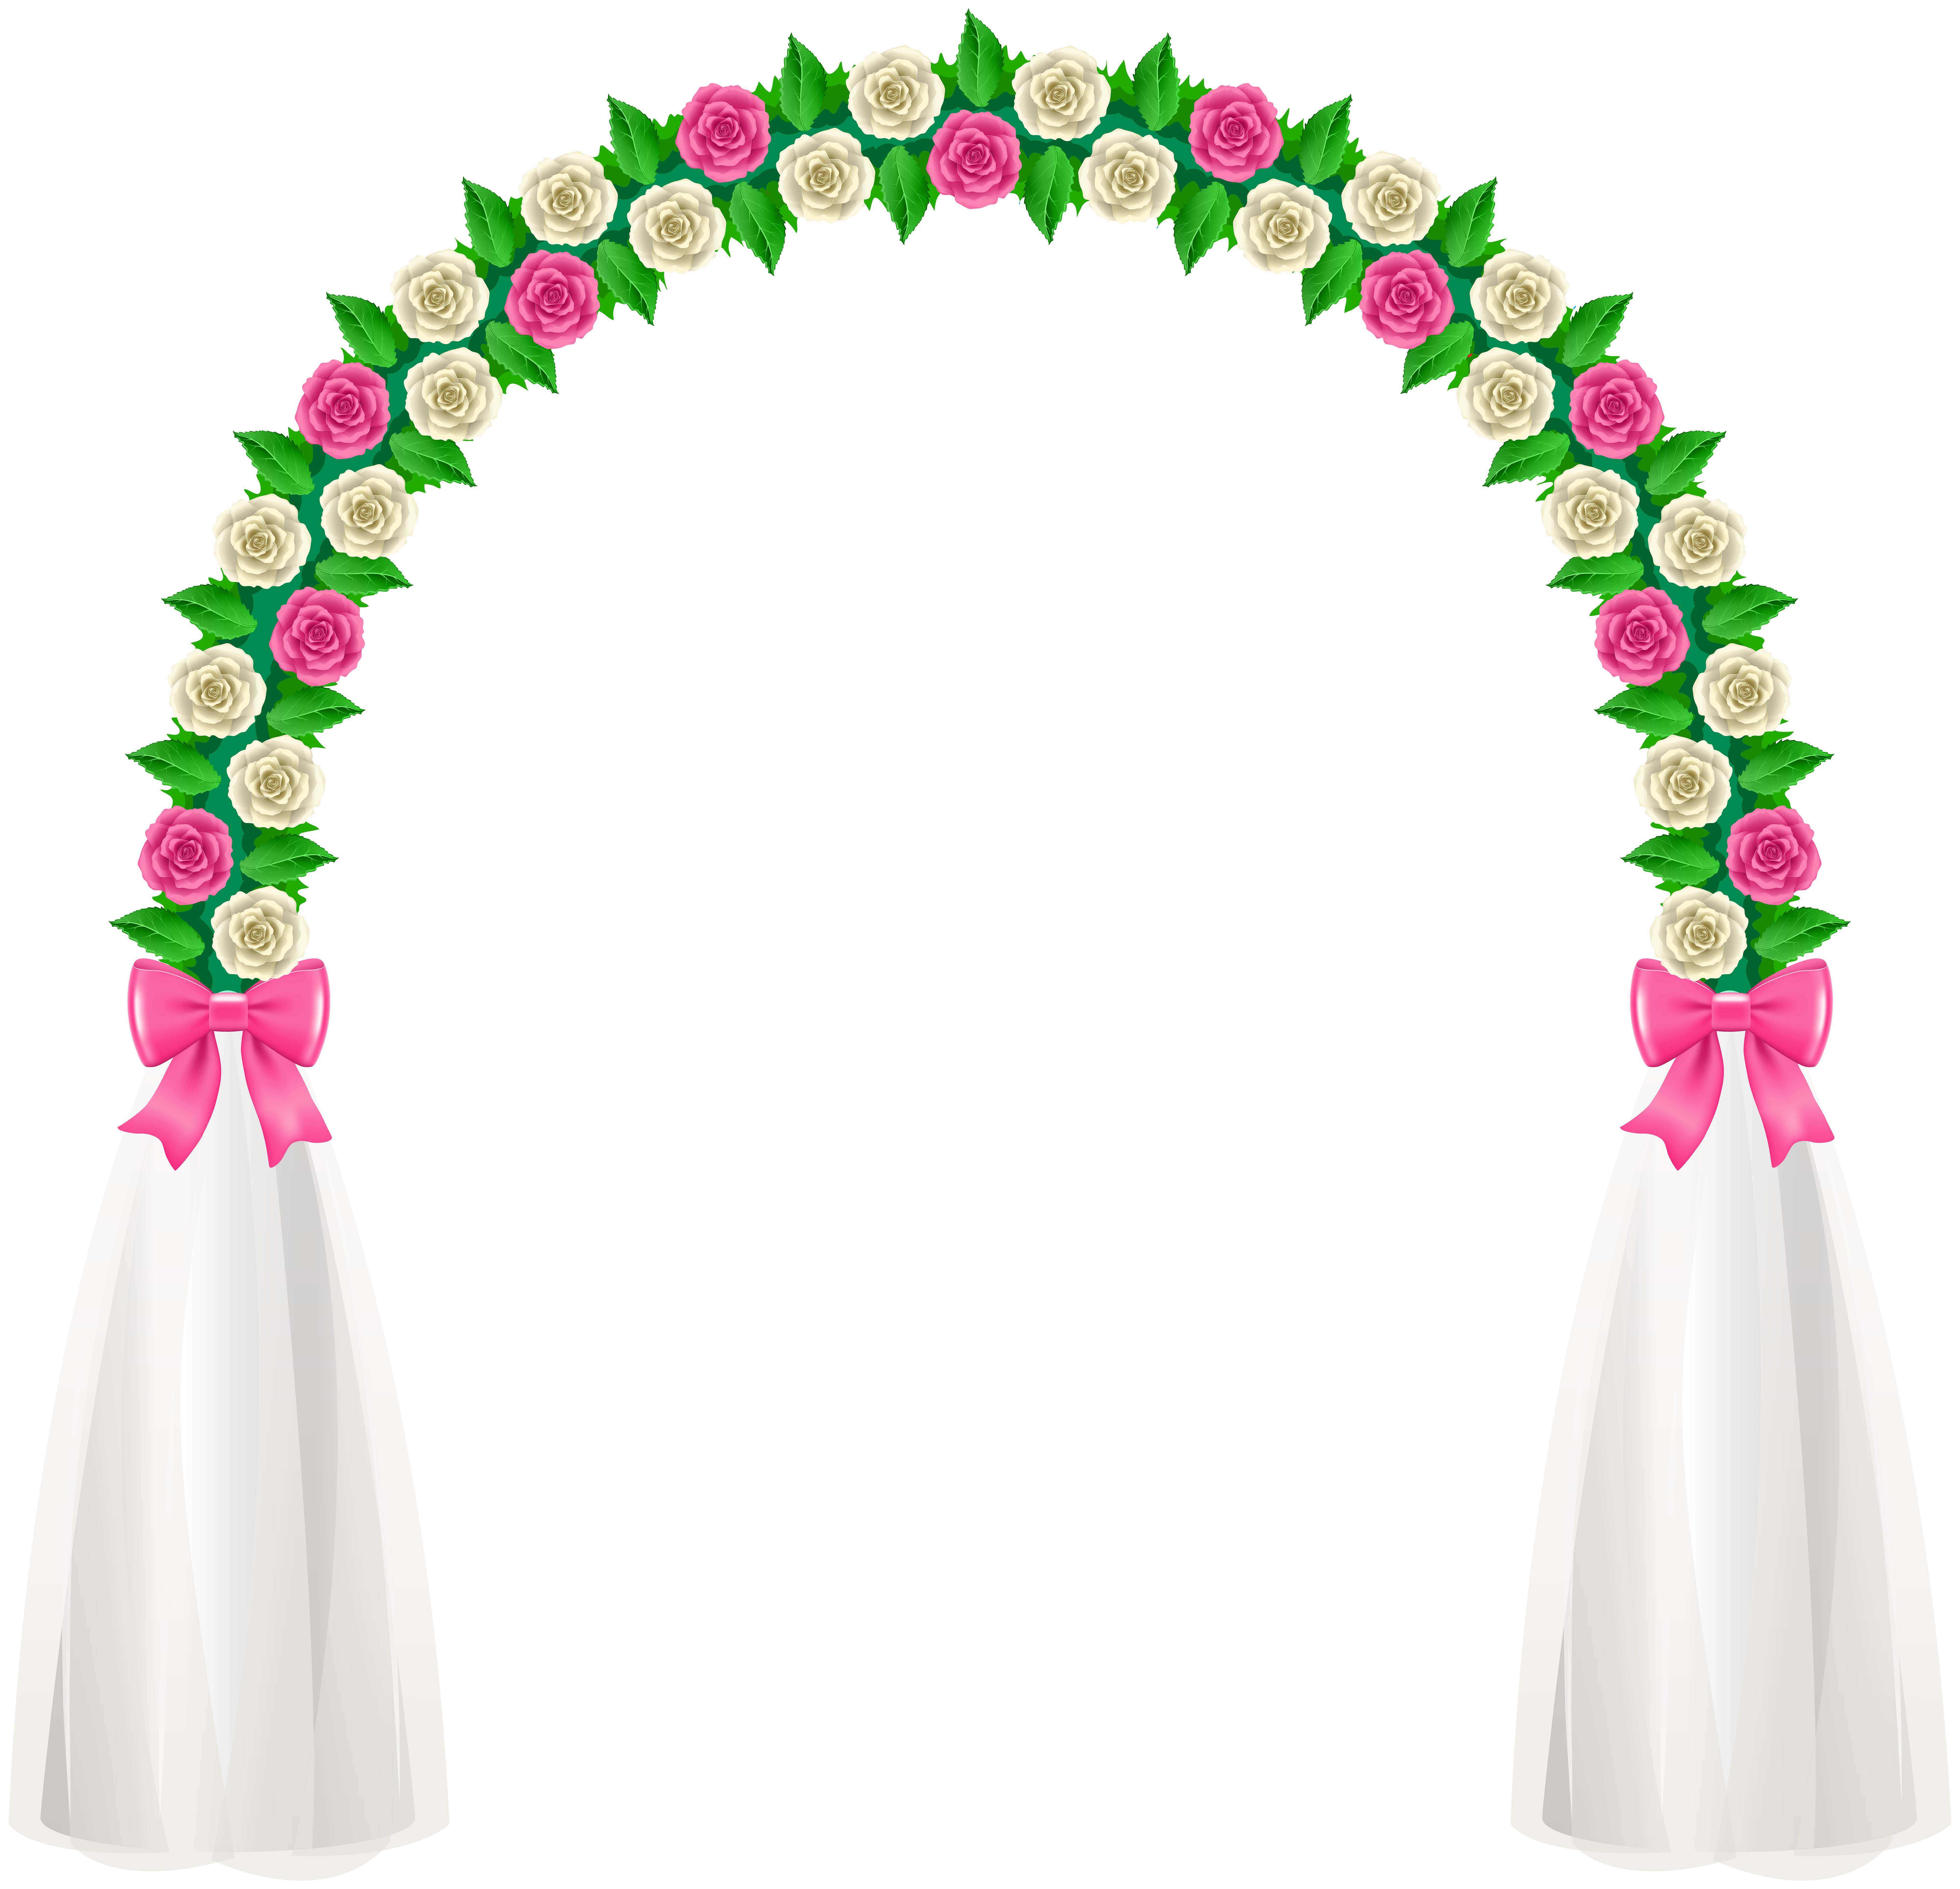 Gate clipart marriage. Wedding arch png clip